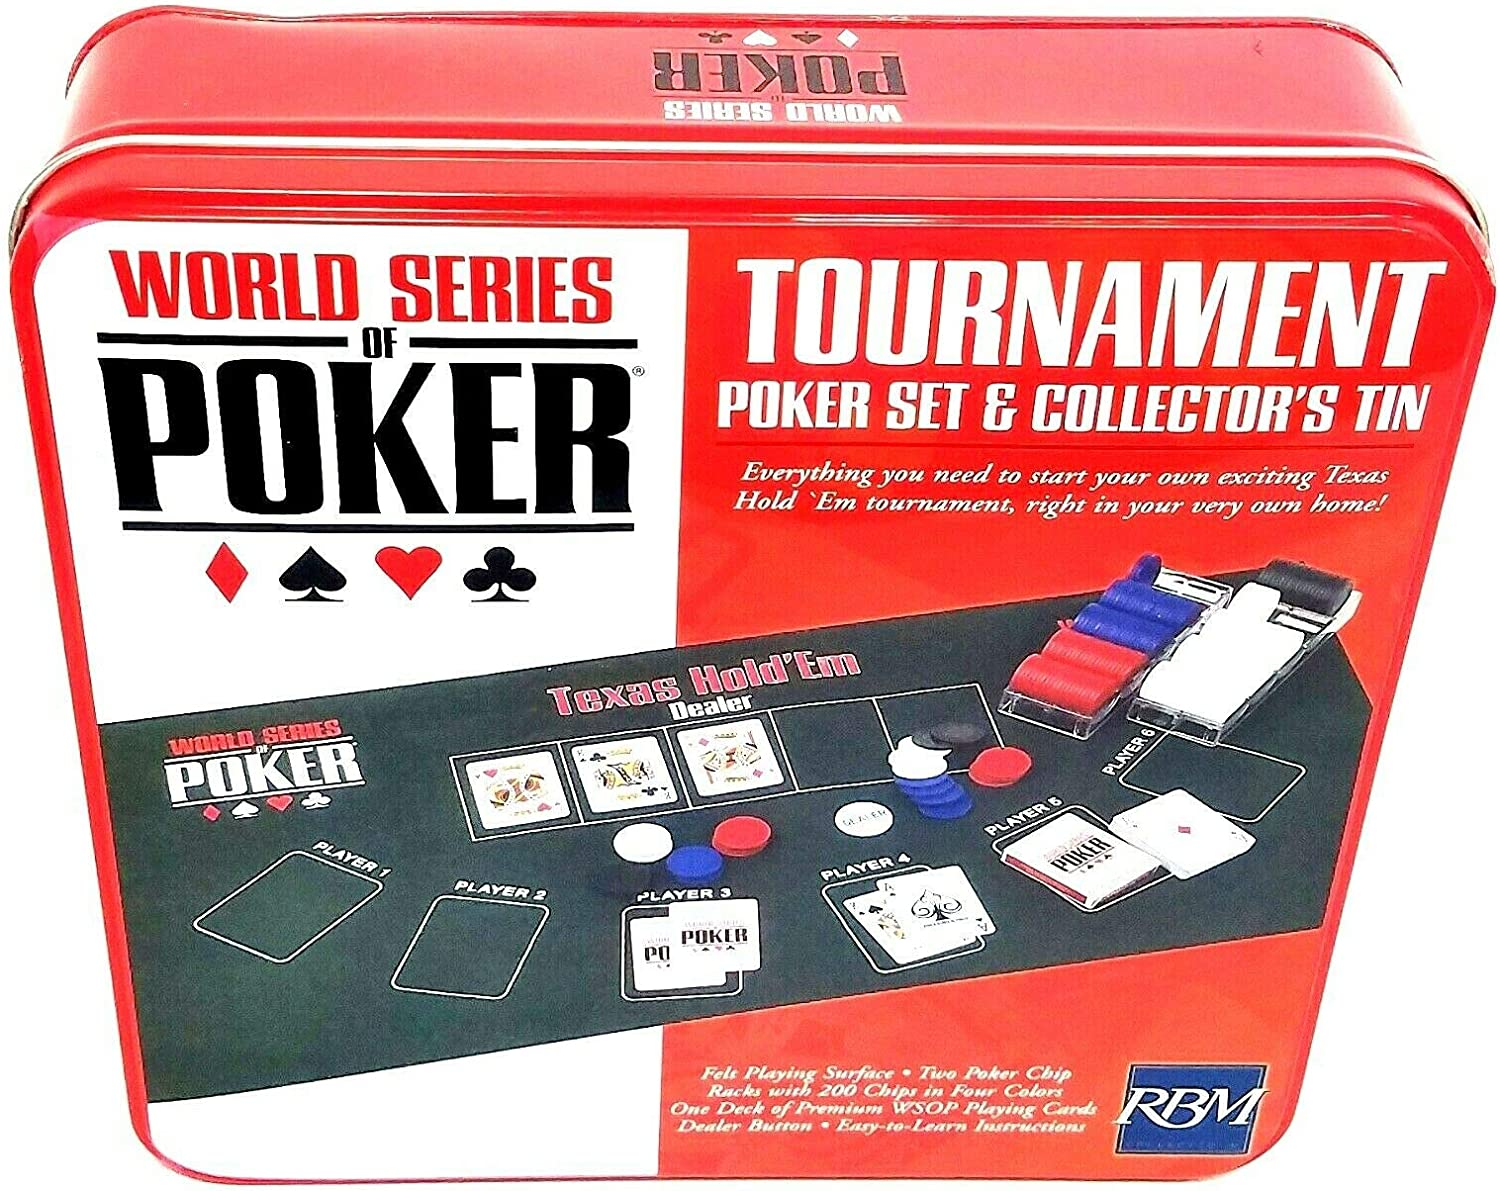 World Series Of Poker Texas Holdem Tournament Poker Set /& Collectors Tin Includes Everything for Your Own Texas Hold Em Tournament